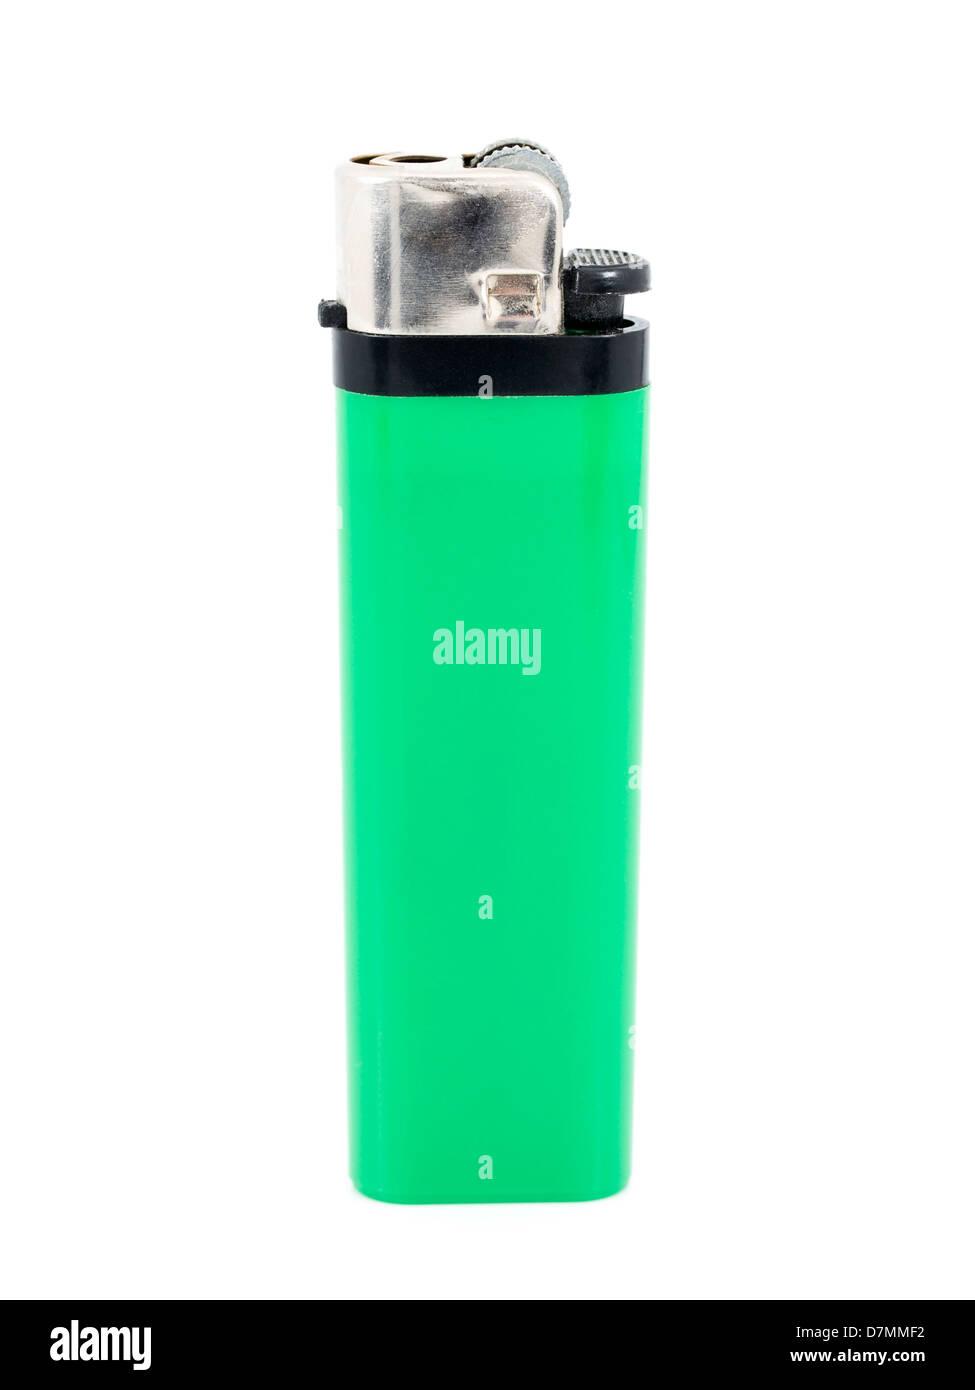 Disposable lighter - Stock Image